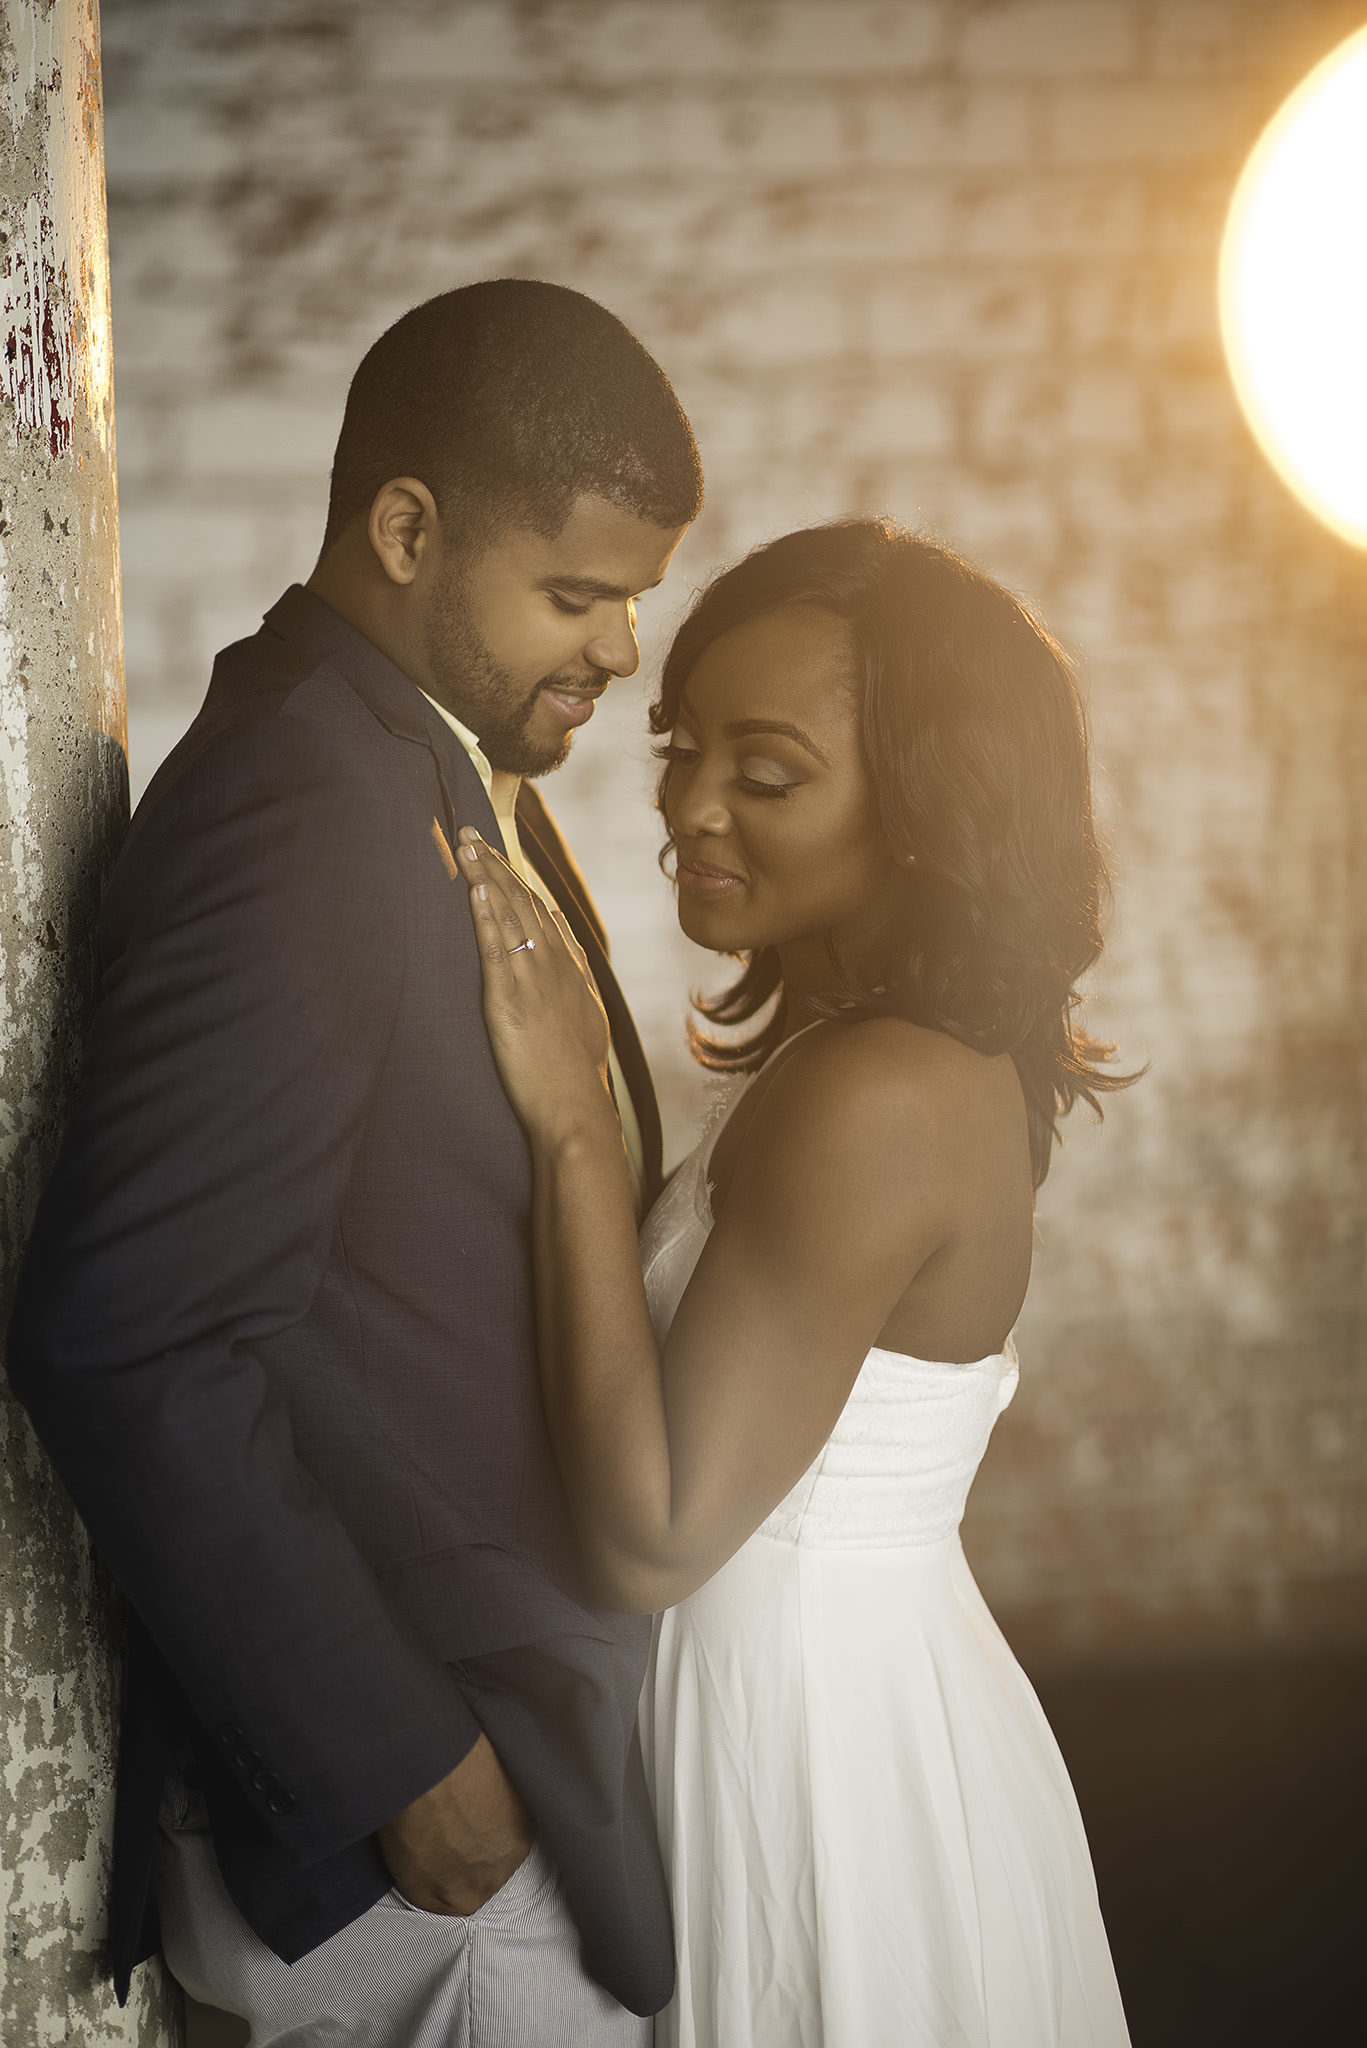 Houston-studio-engagement-photography-session-Fill-in-the-blank-heights-classy